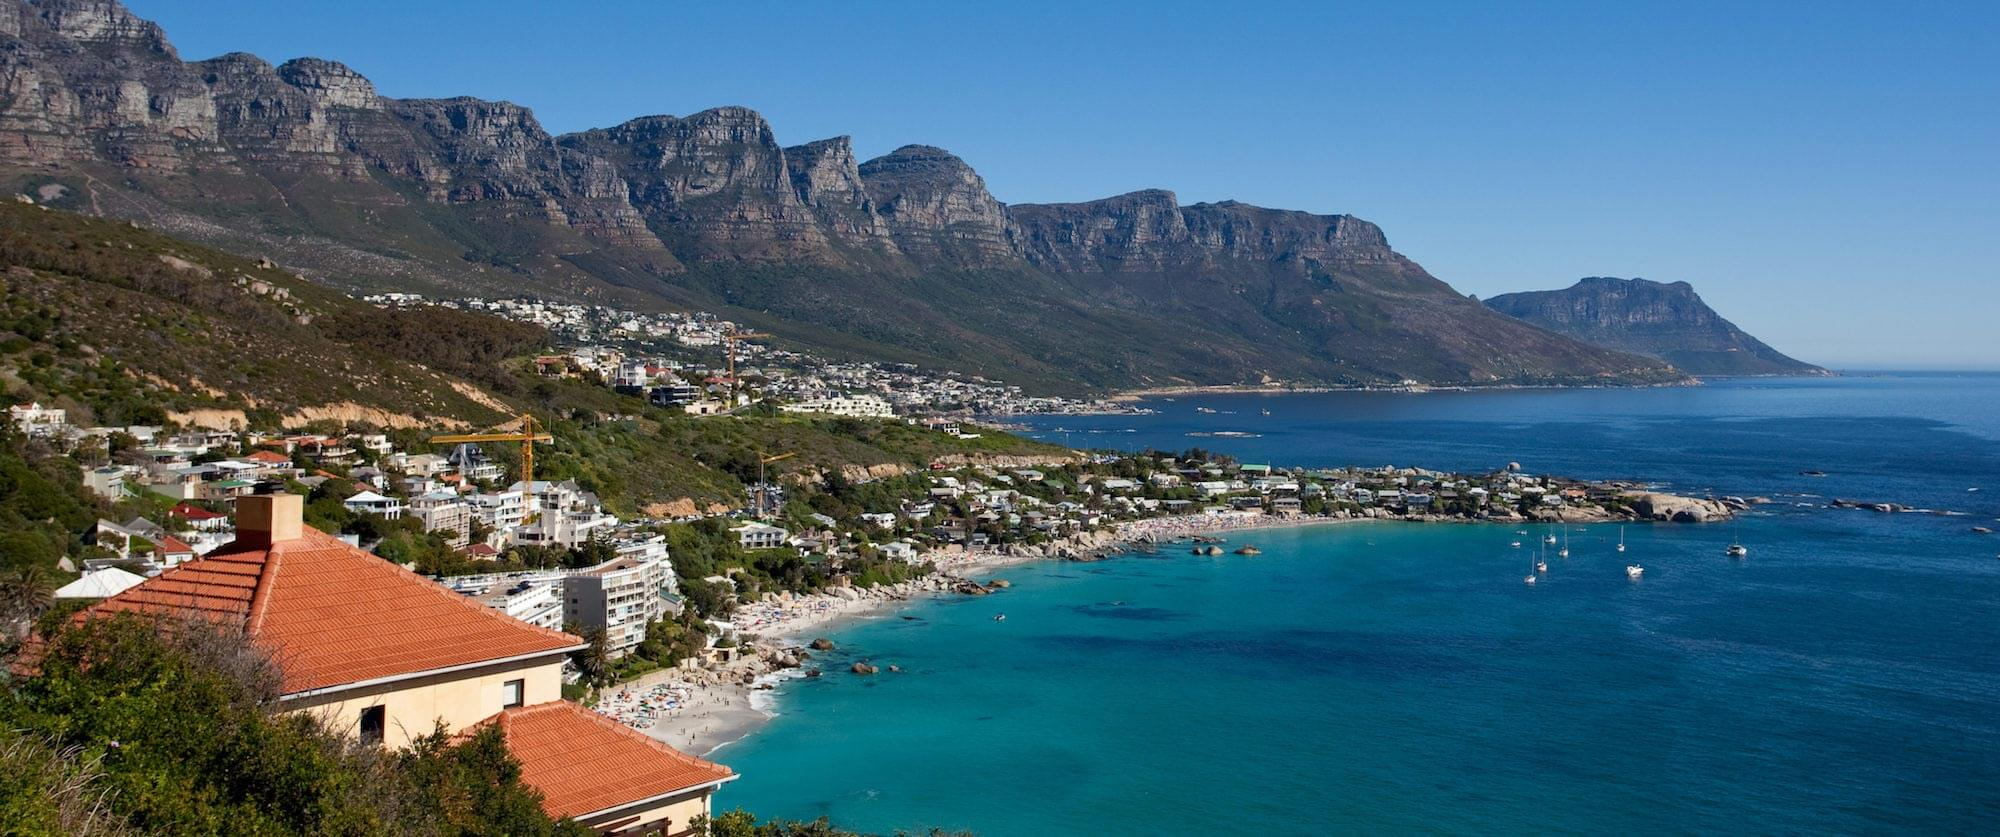 Cape Town - Twelve Apostles - South Africa Honeymoon: Luxury Highlights Tour